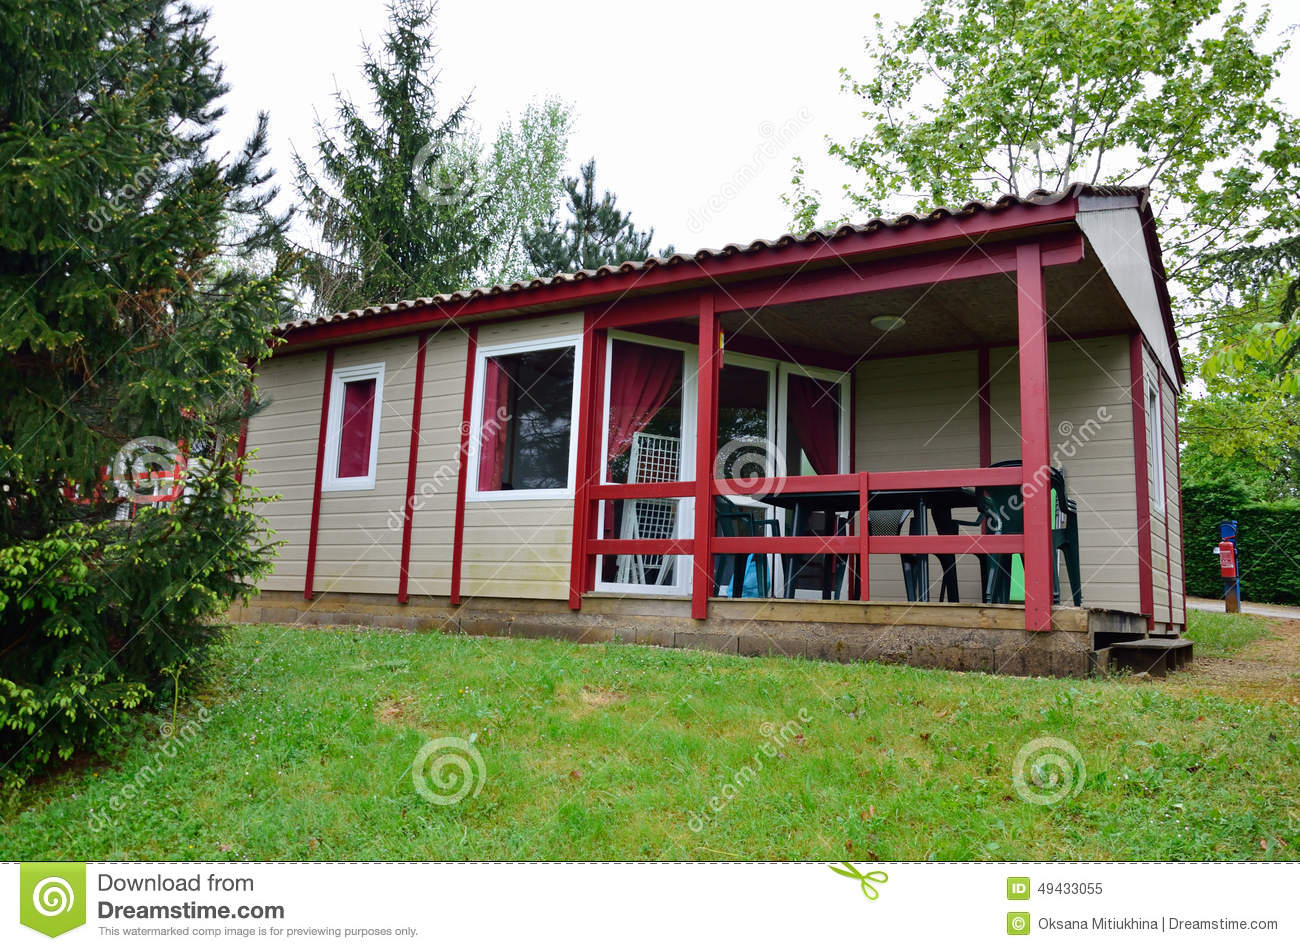 Camping Cottage In The Green Lawn Stock Image Image Of Small